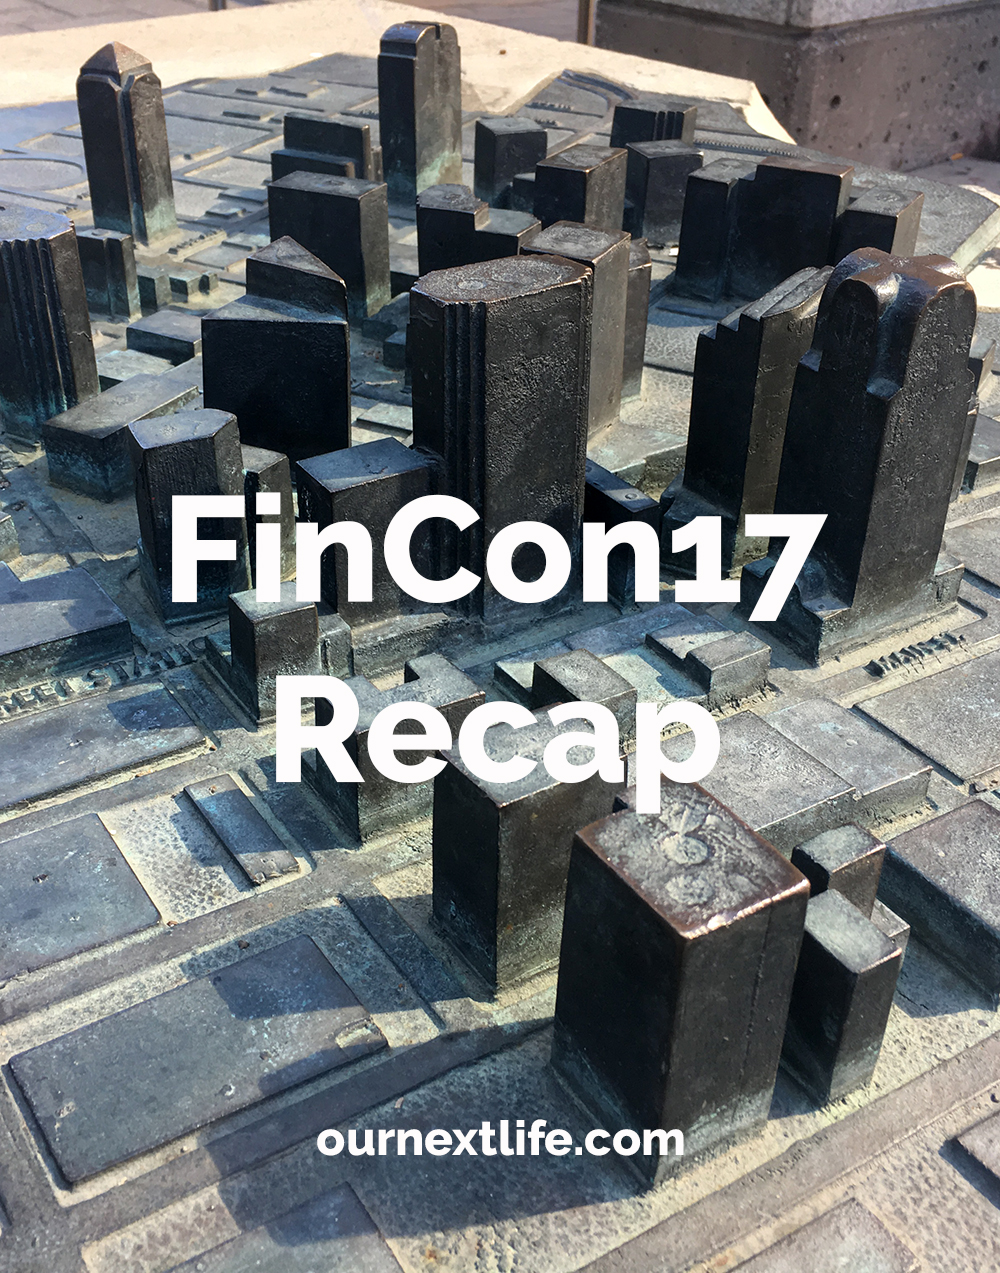 FinCon17 recap, FinCon Expo, Financial Bloggers Conference, Our Next Life, ournextlife.com